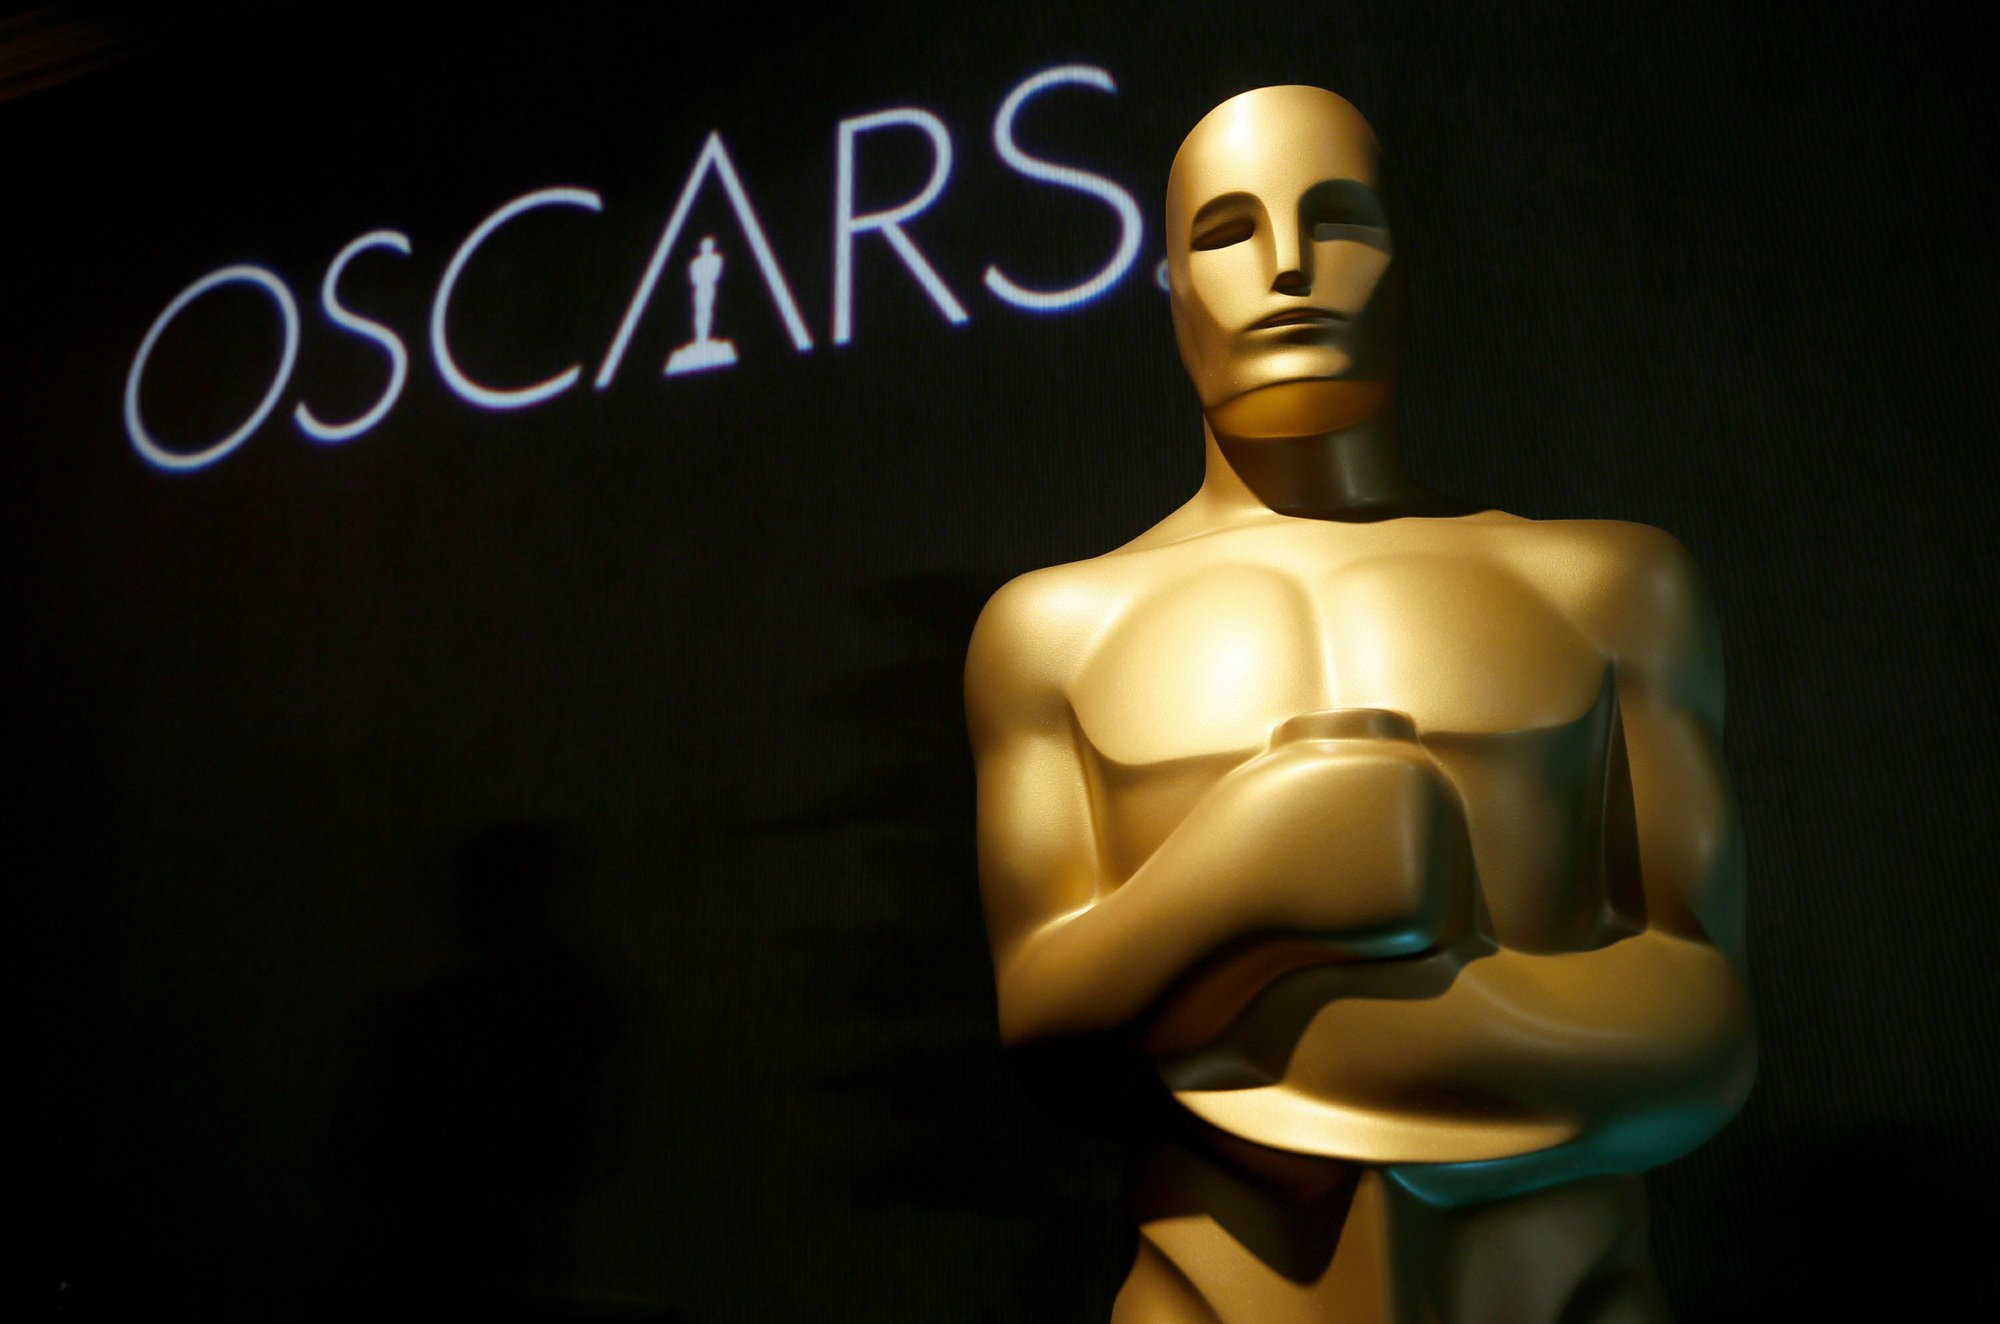 4 Oscars will be given off air